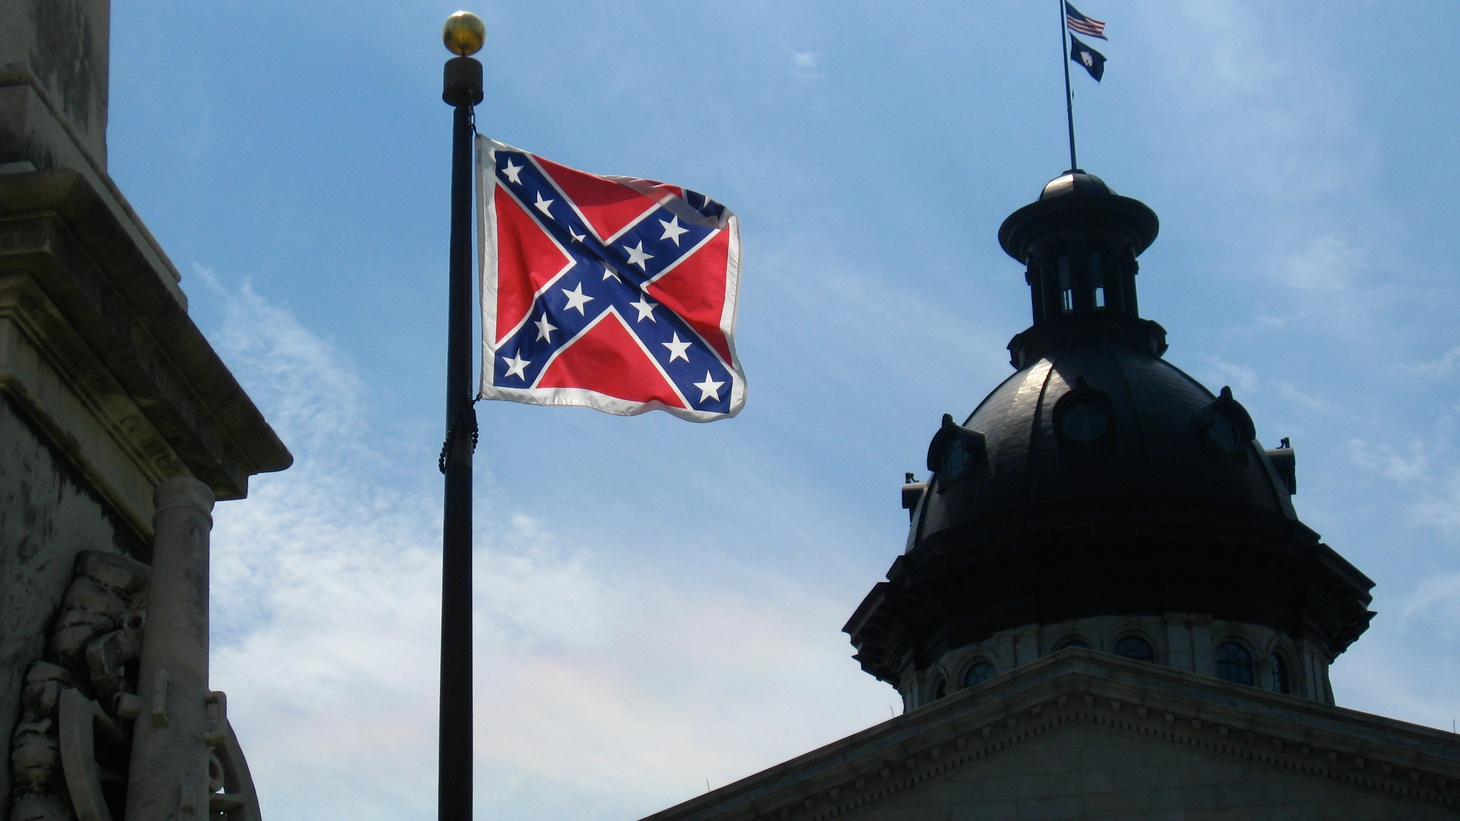 Yesterday, the  US Supreme Court said  Texas does not have to provide state license plants that include the Confederate Flag.  But the flag still flies in some southern states, including South Carolina.